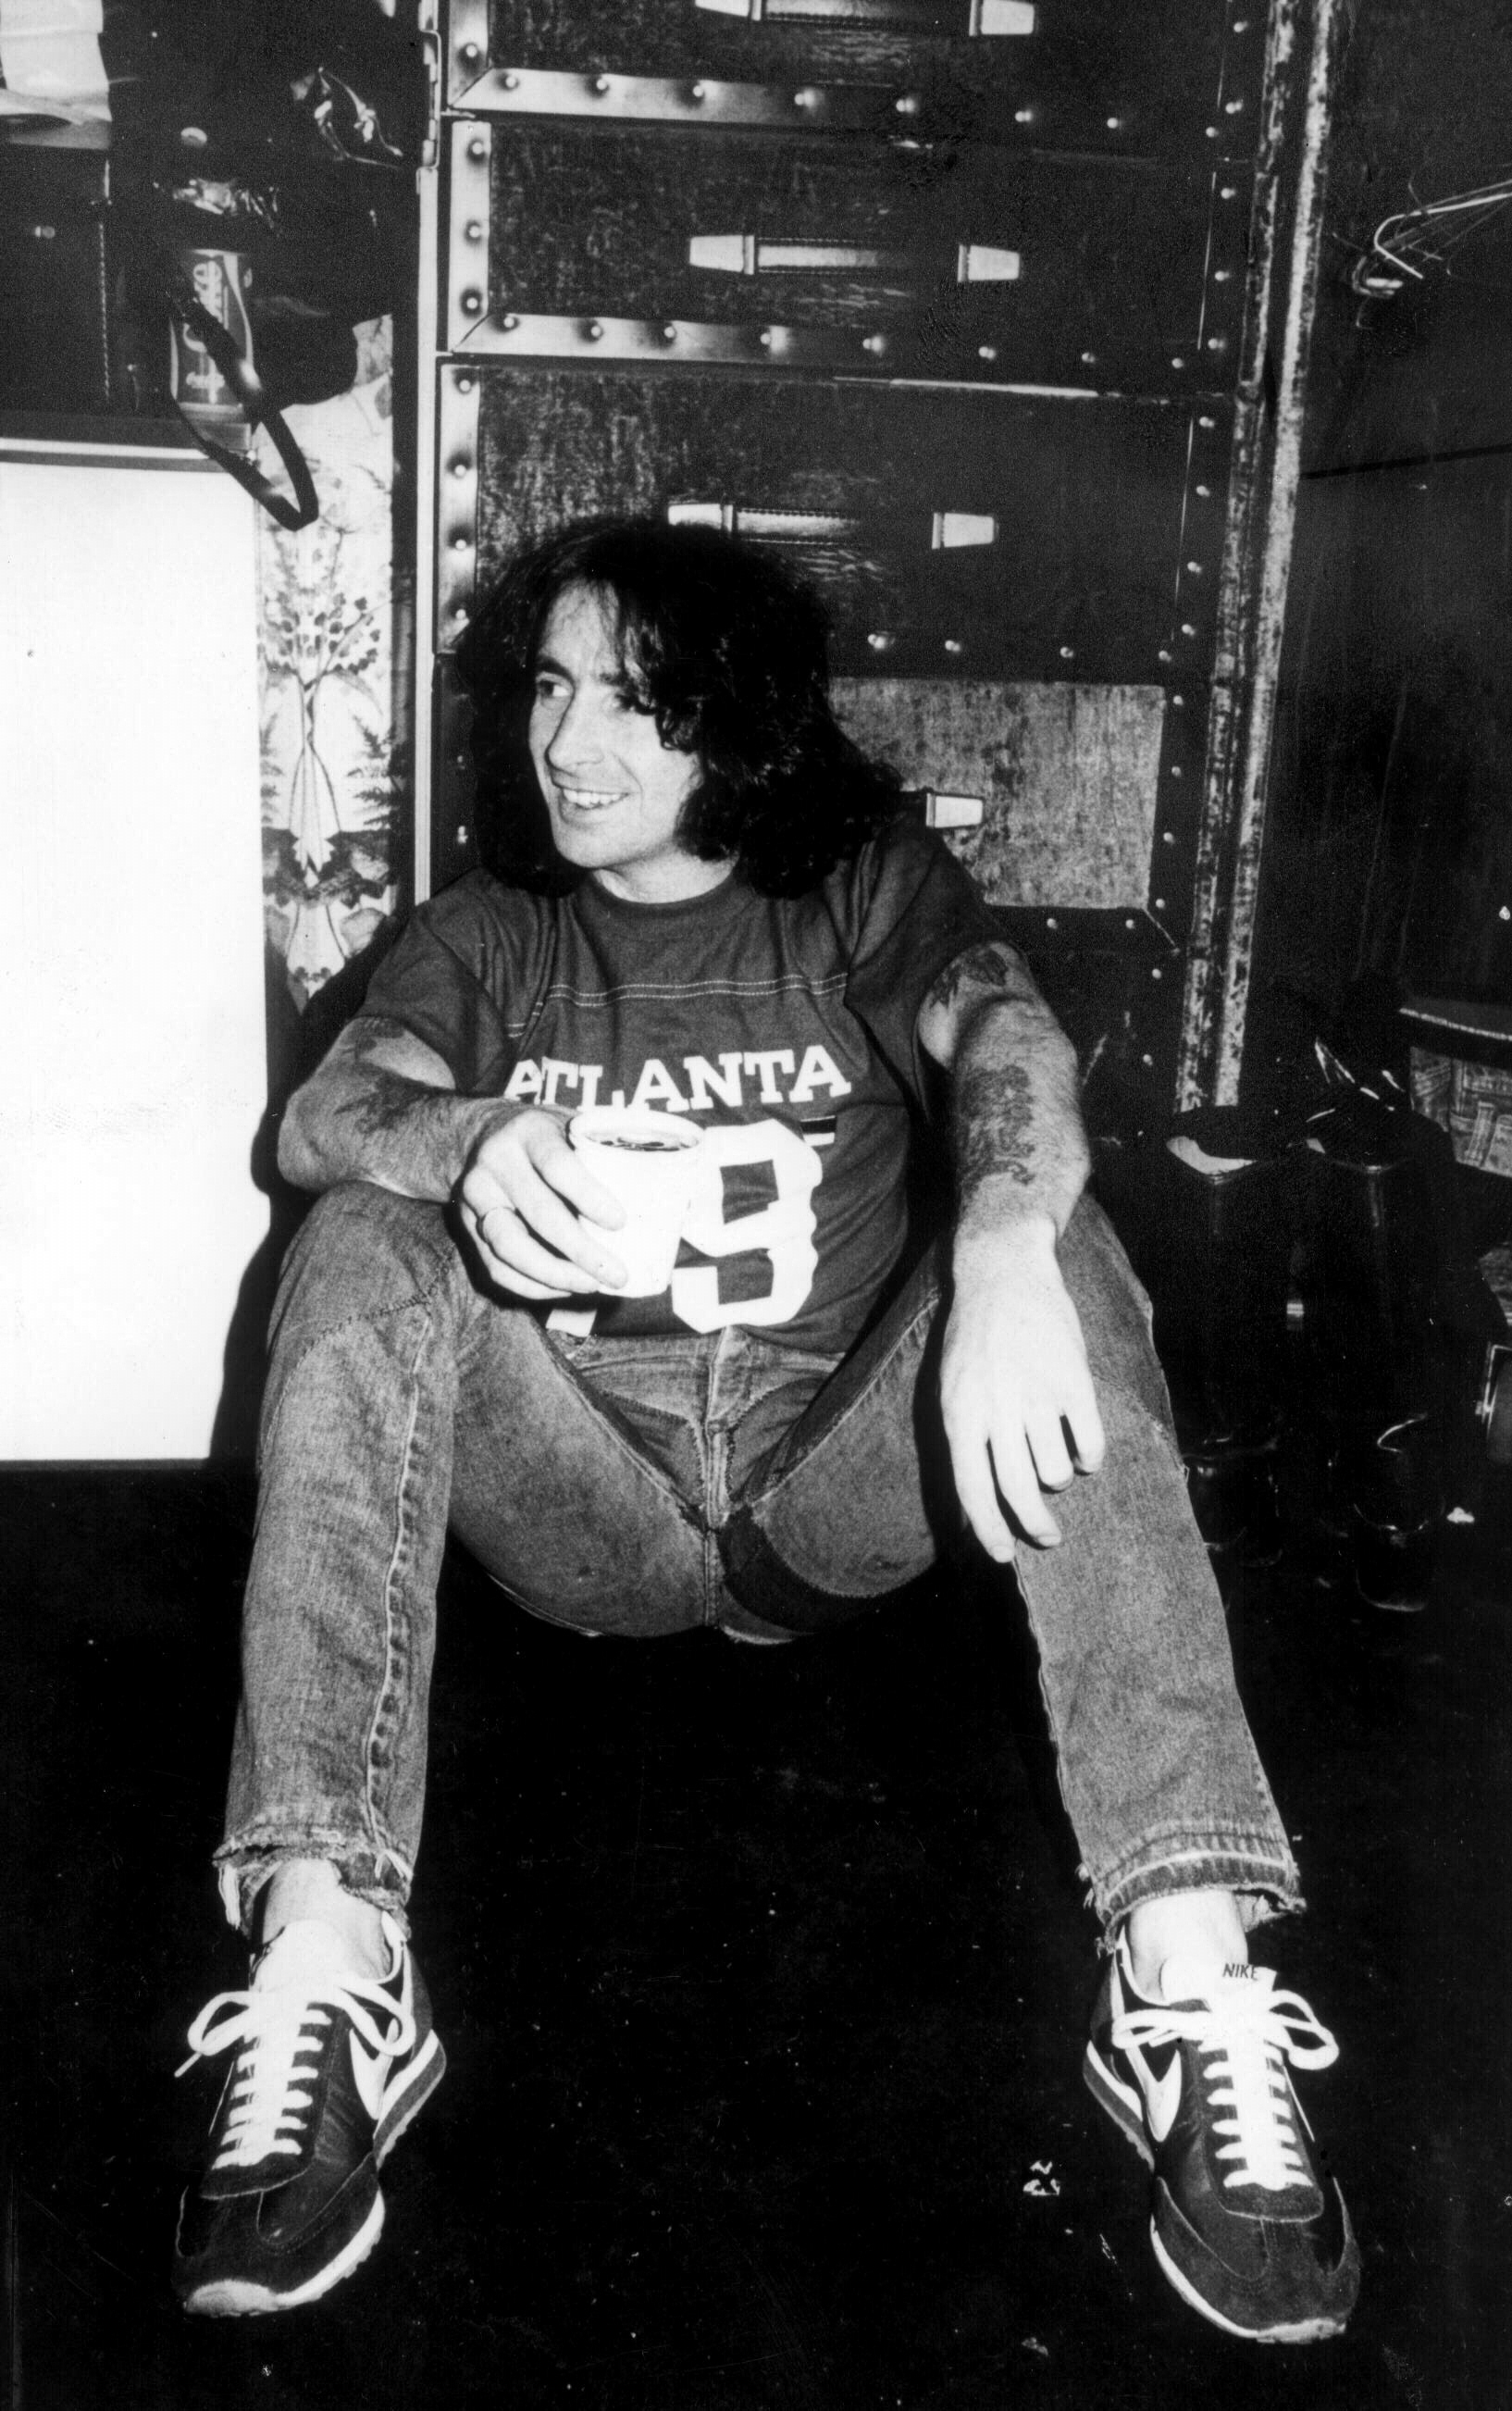 stick   ya fuse box bon scott  july